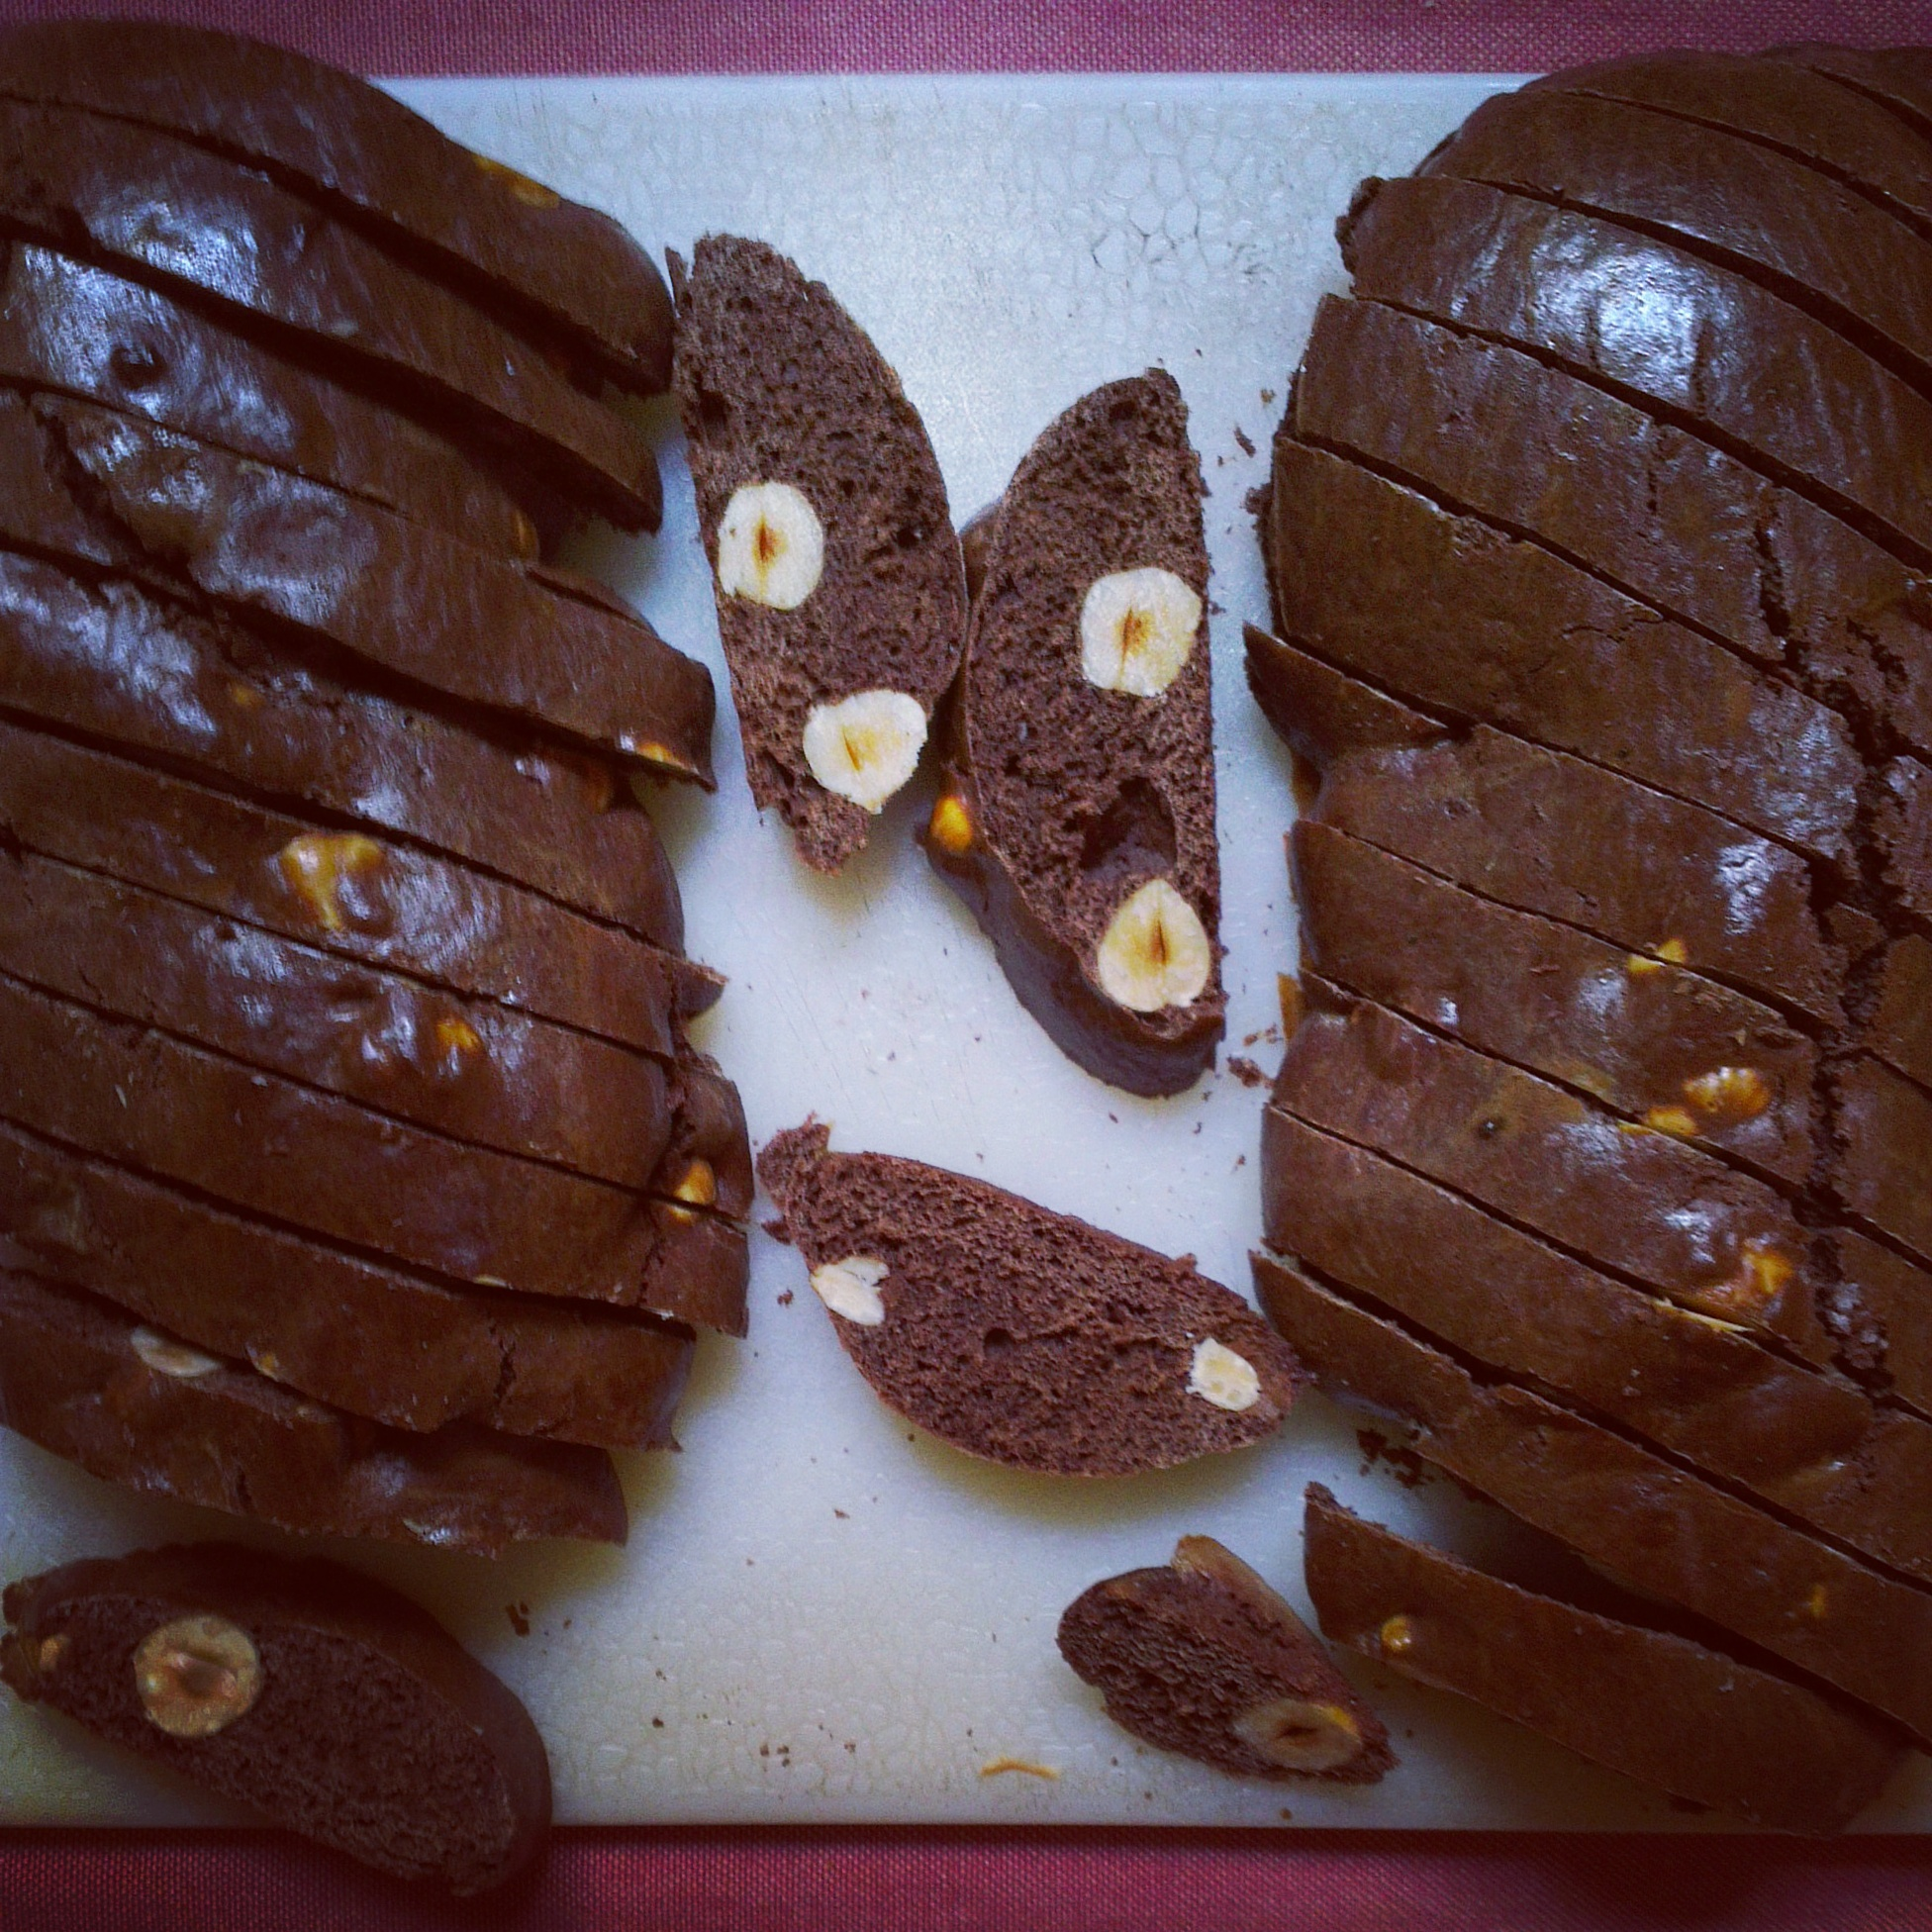 Chocolate Hazelnut Biscotti, after the first bake, sliced into 12mm slices